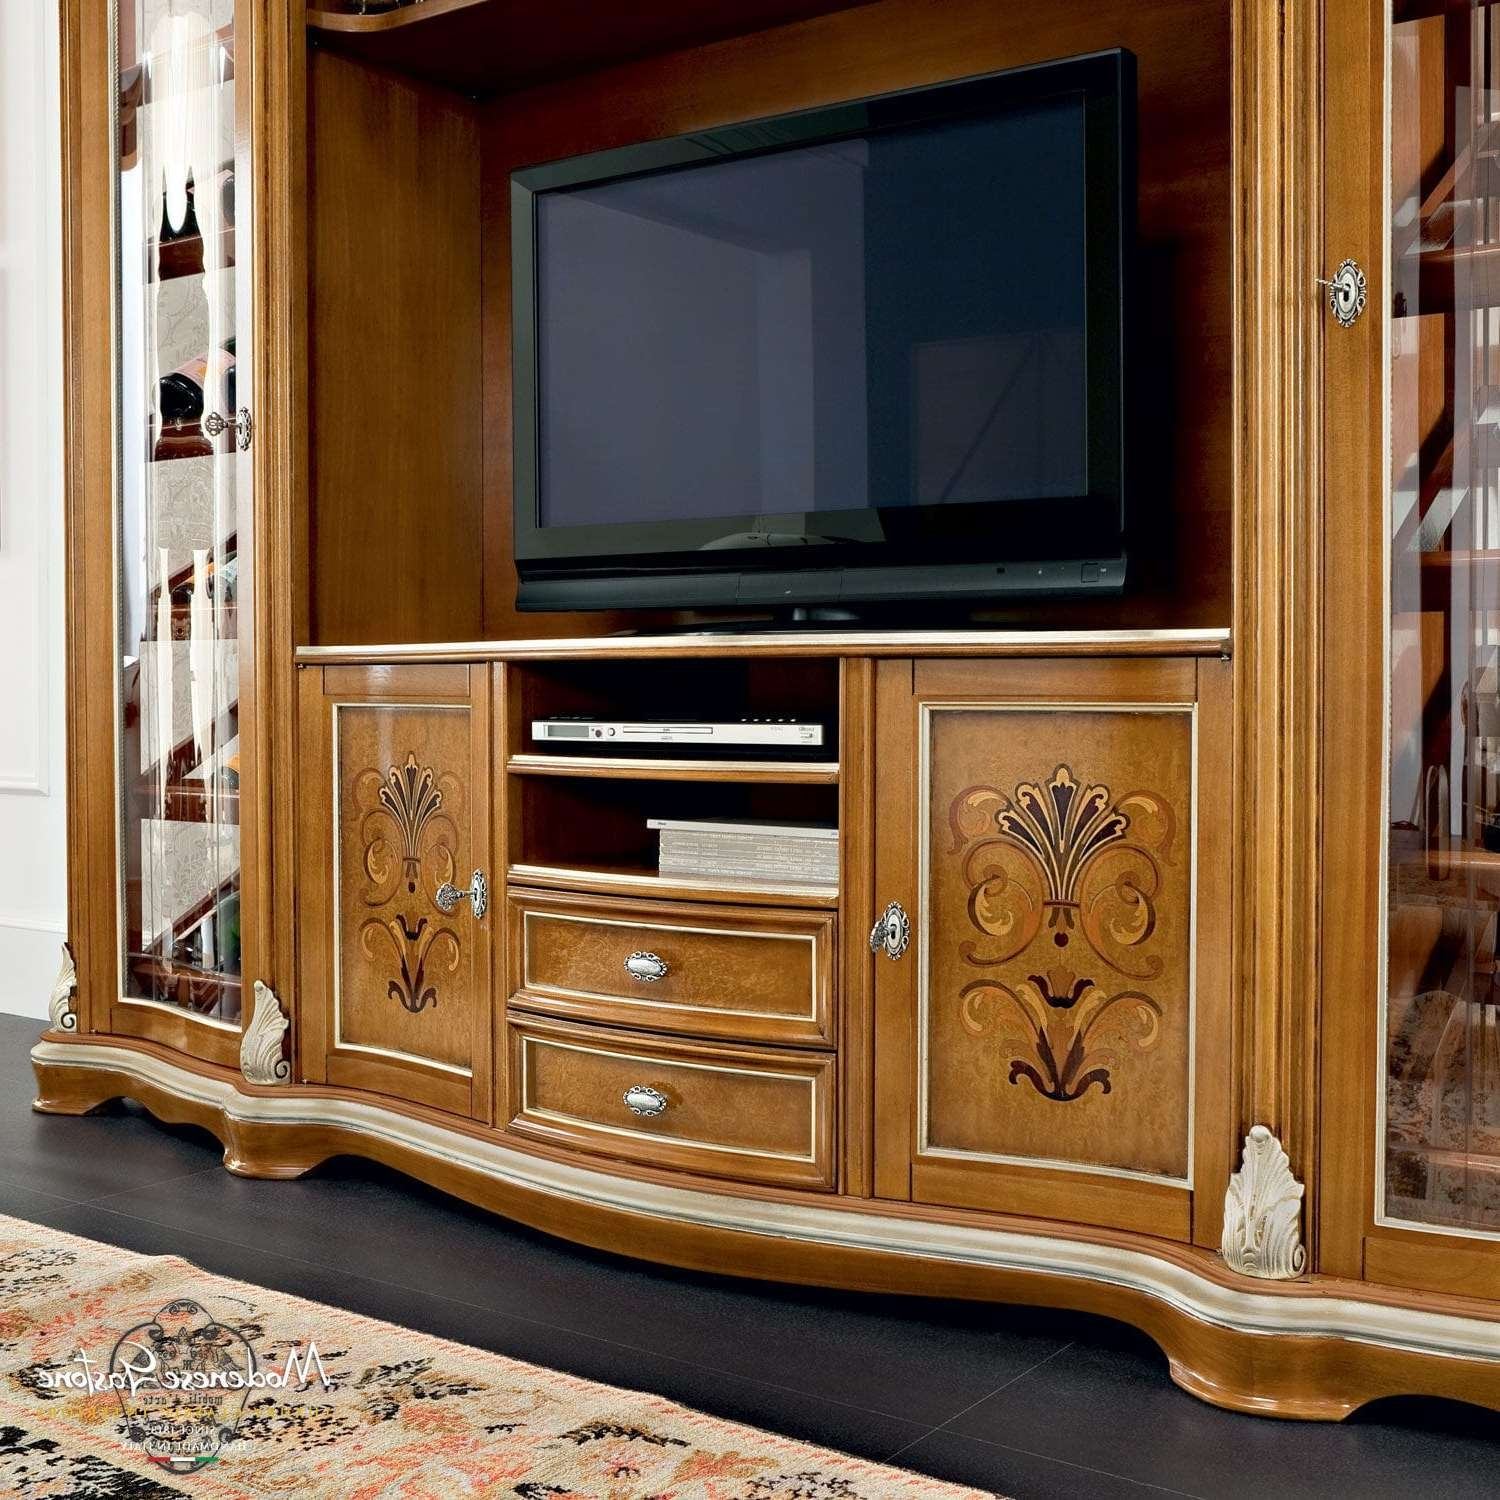 Classic Tv Cabinet / Solid Wood – Bella Vita – Modenese Gastone Within Wooden Tv Cabinets (View 13 of 20)